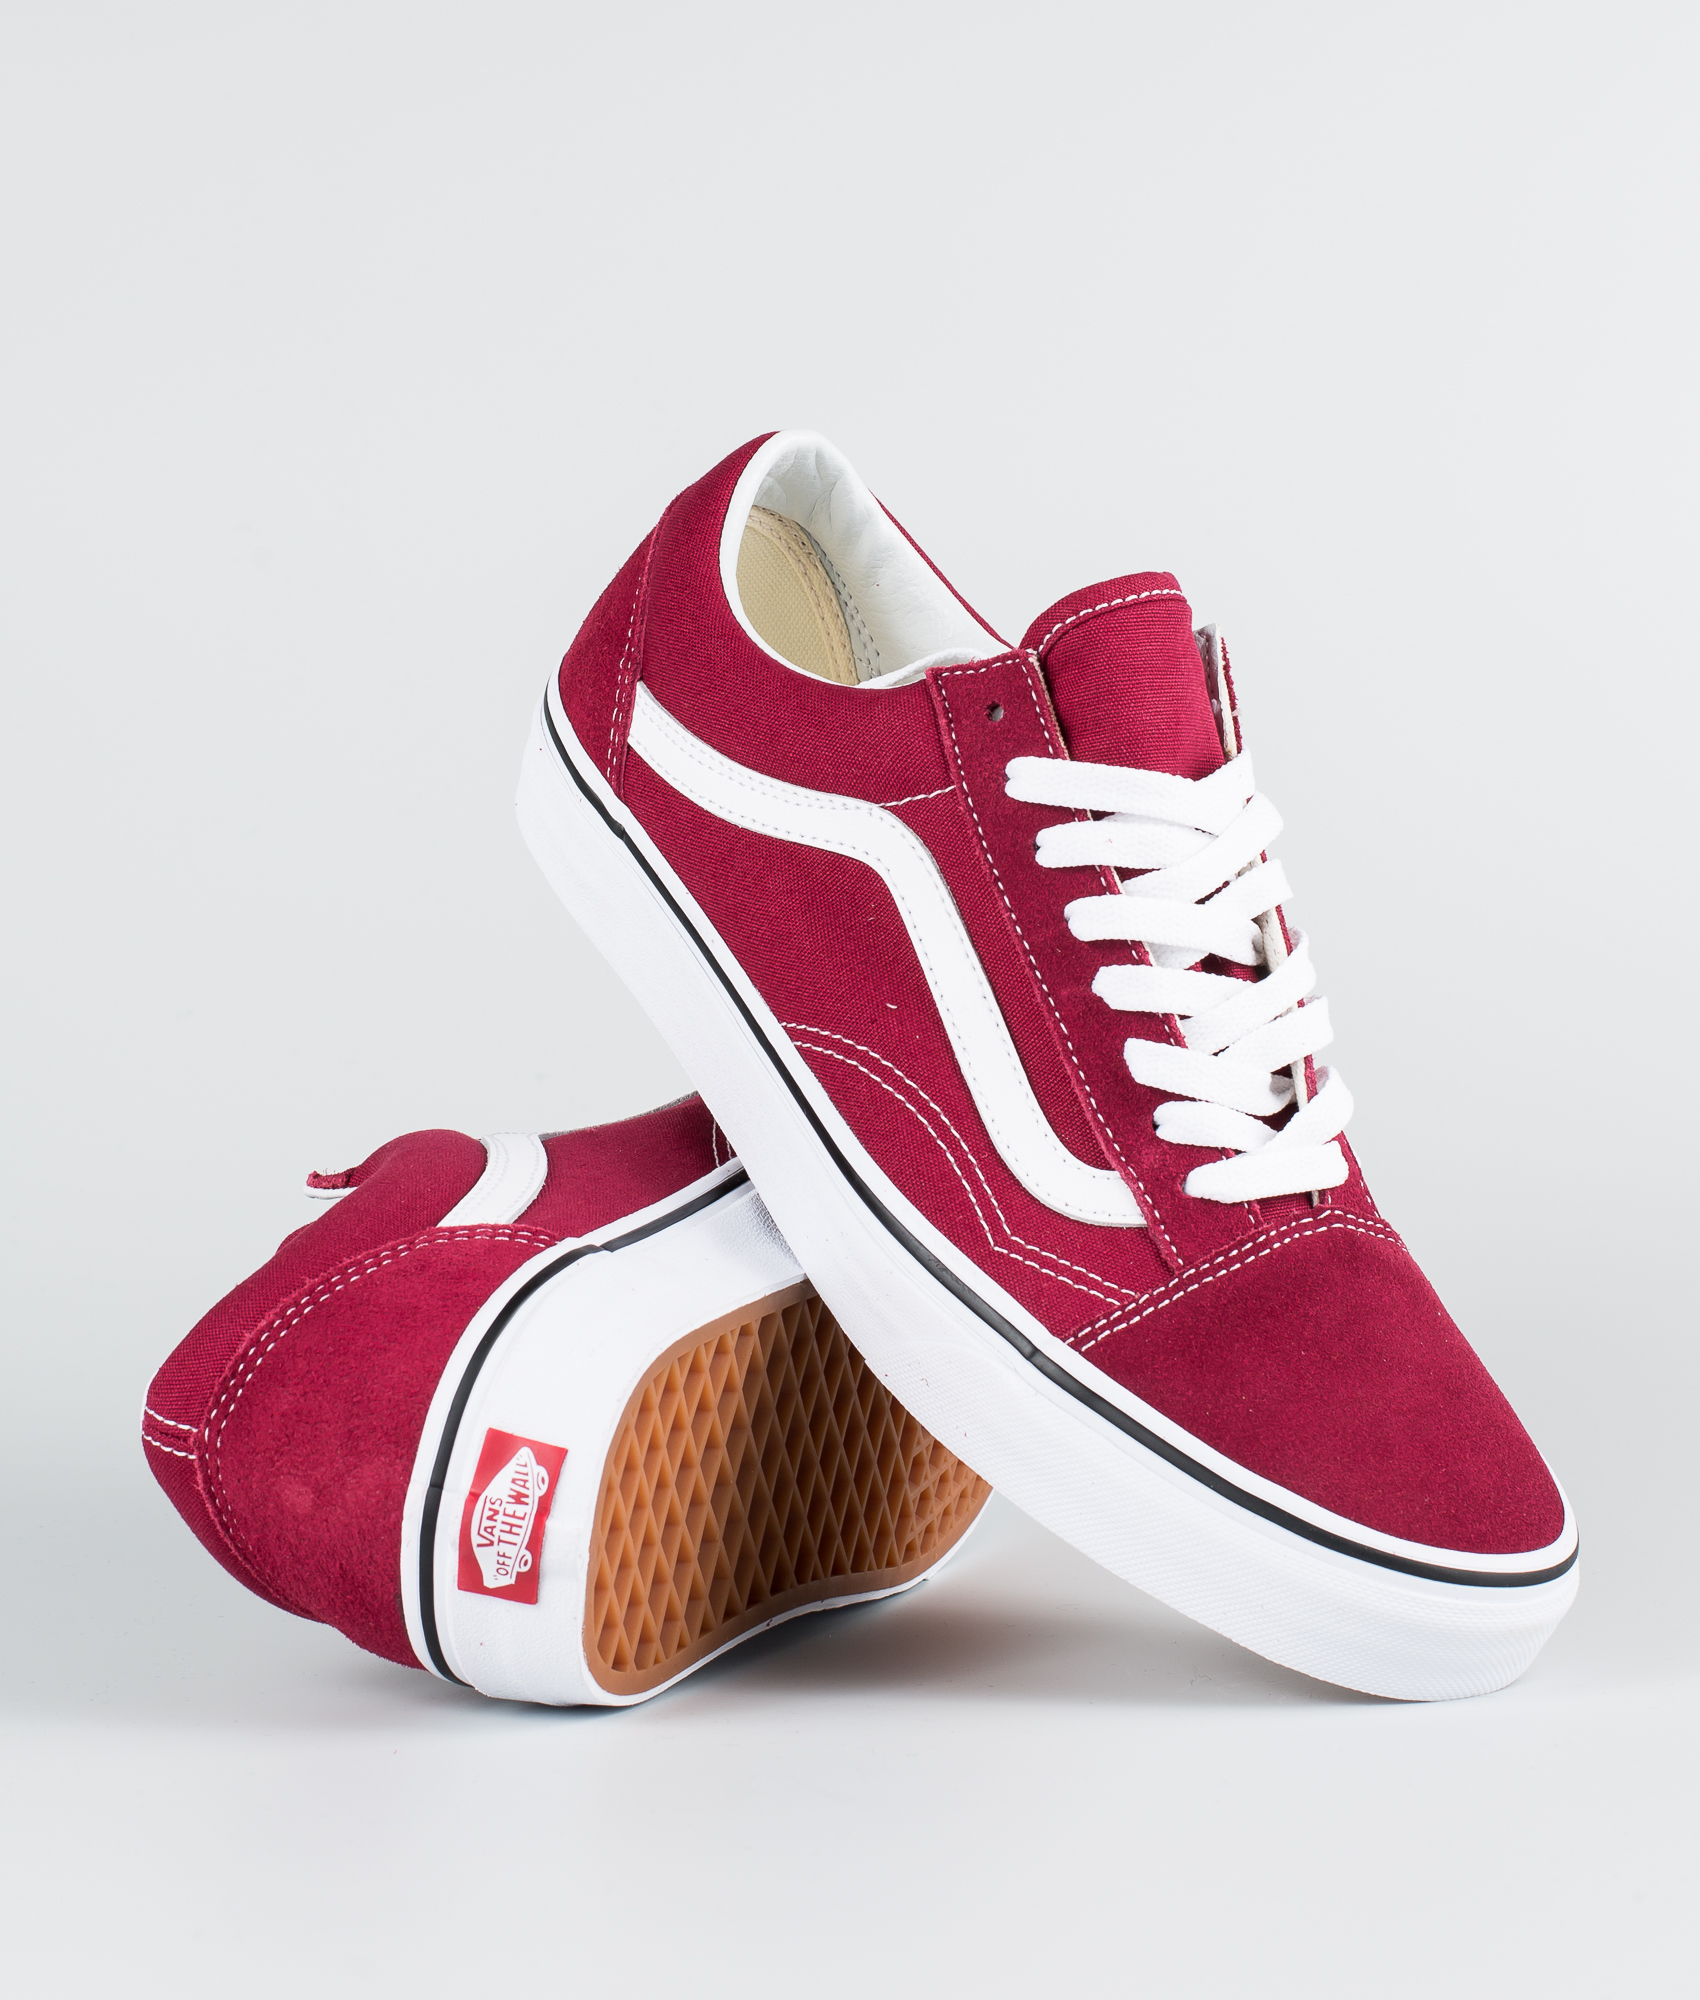 vans old skool nere rosse